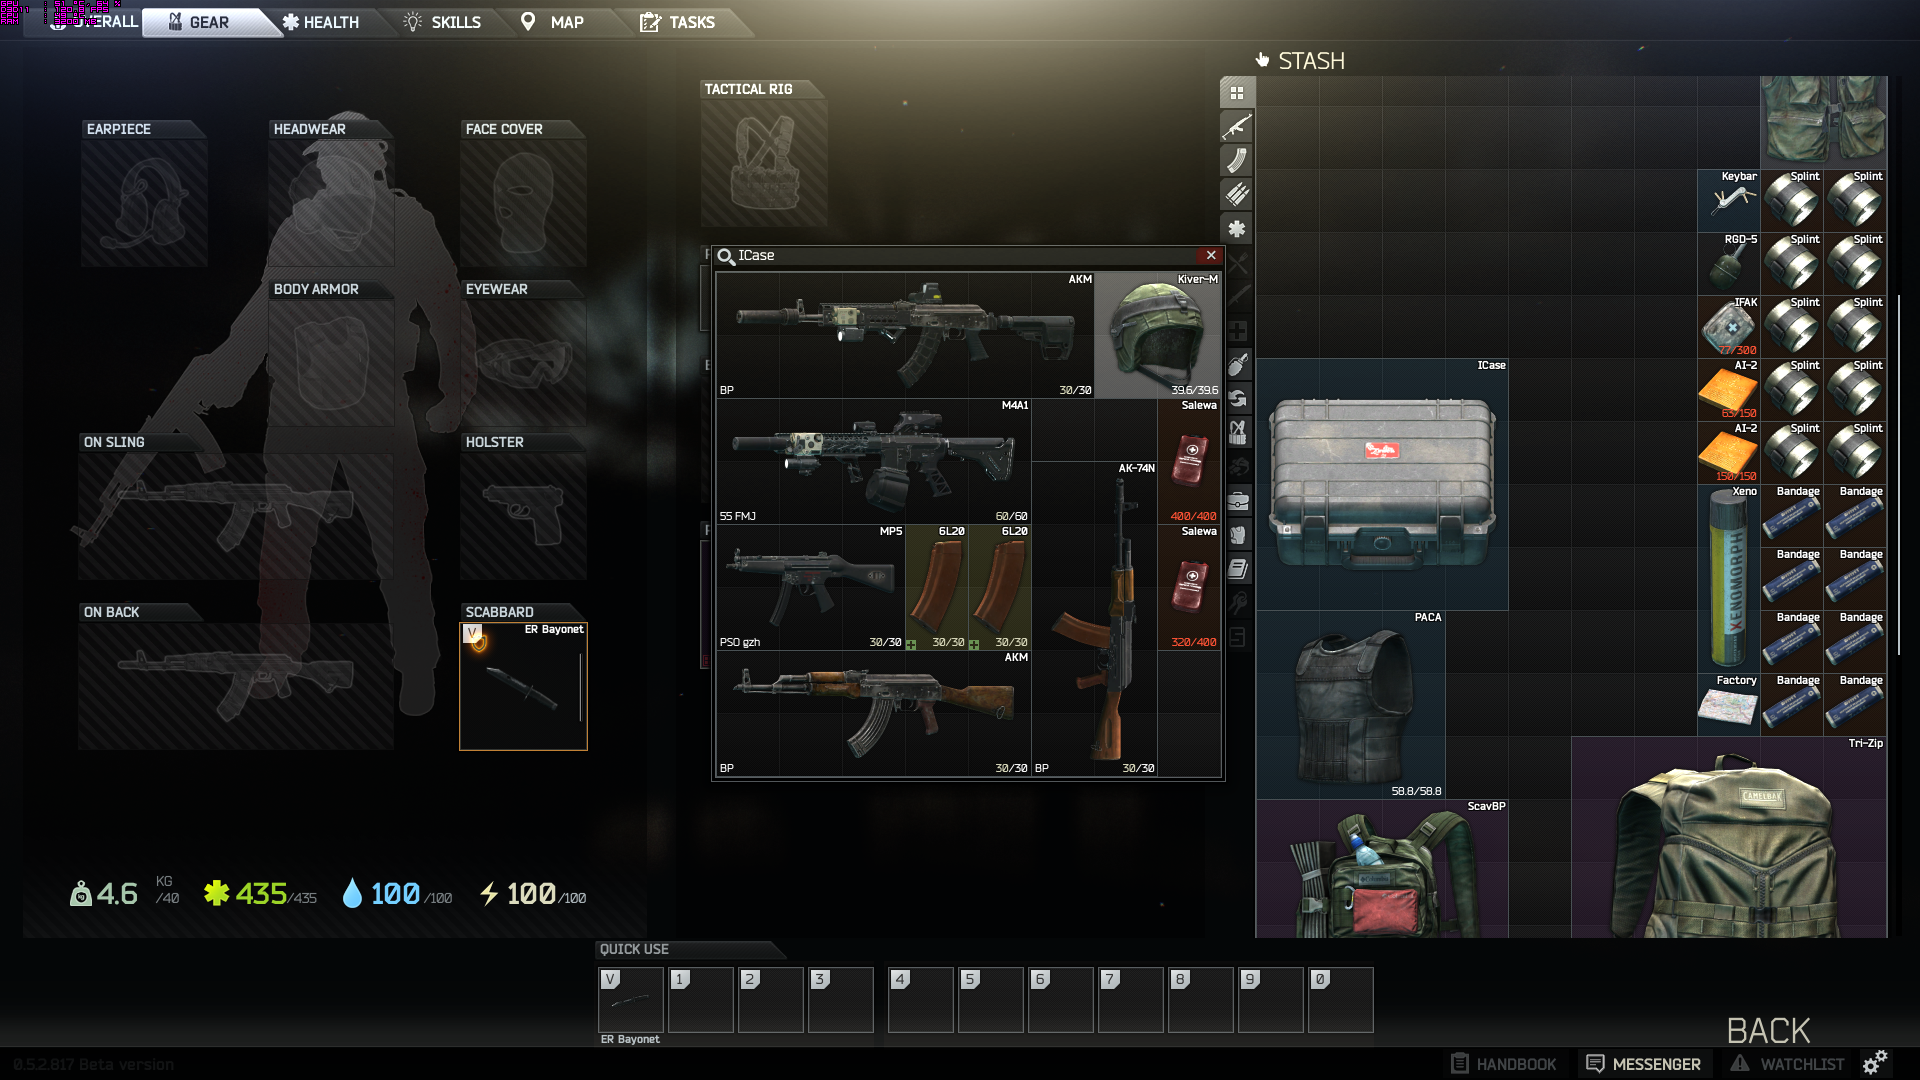 Official Escape From Tarkov Discussion Information Thread